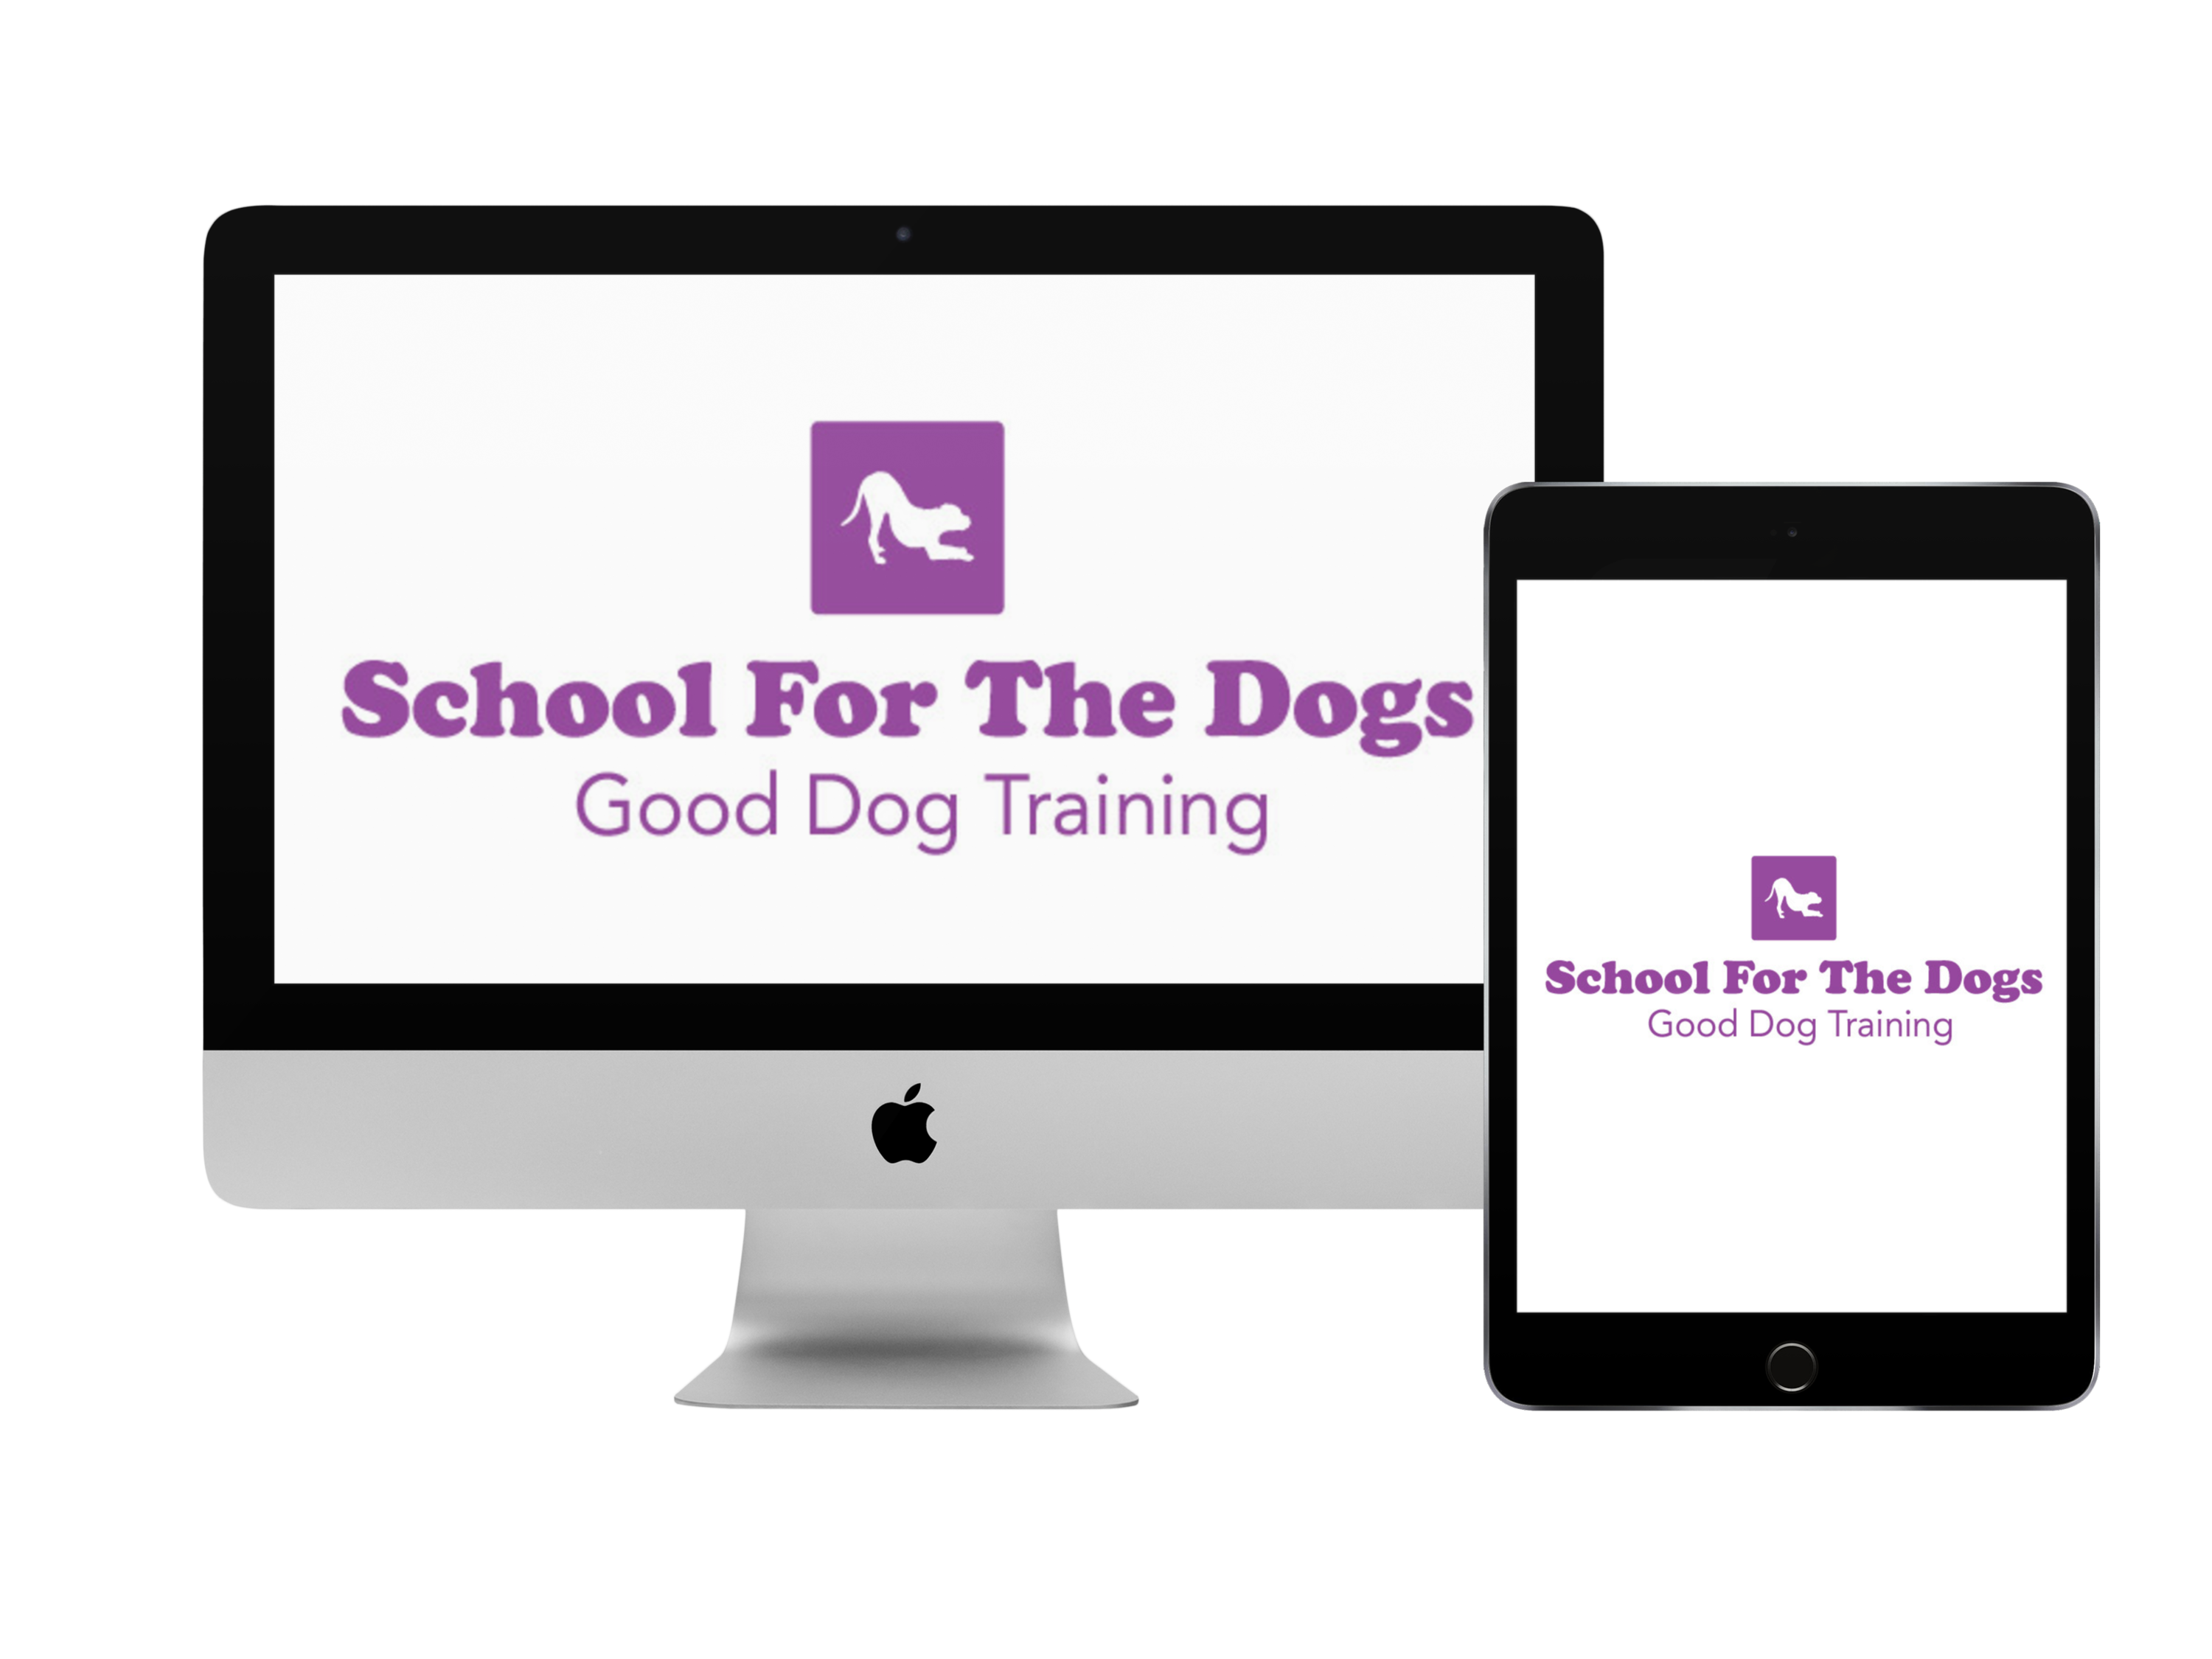 School for the Dogs Good Dog Training logo inside of an imac screen and iPad